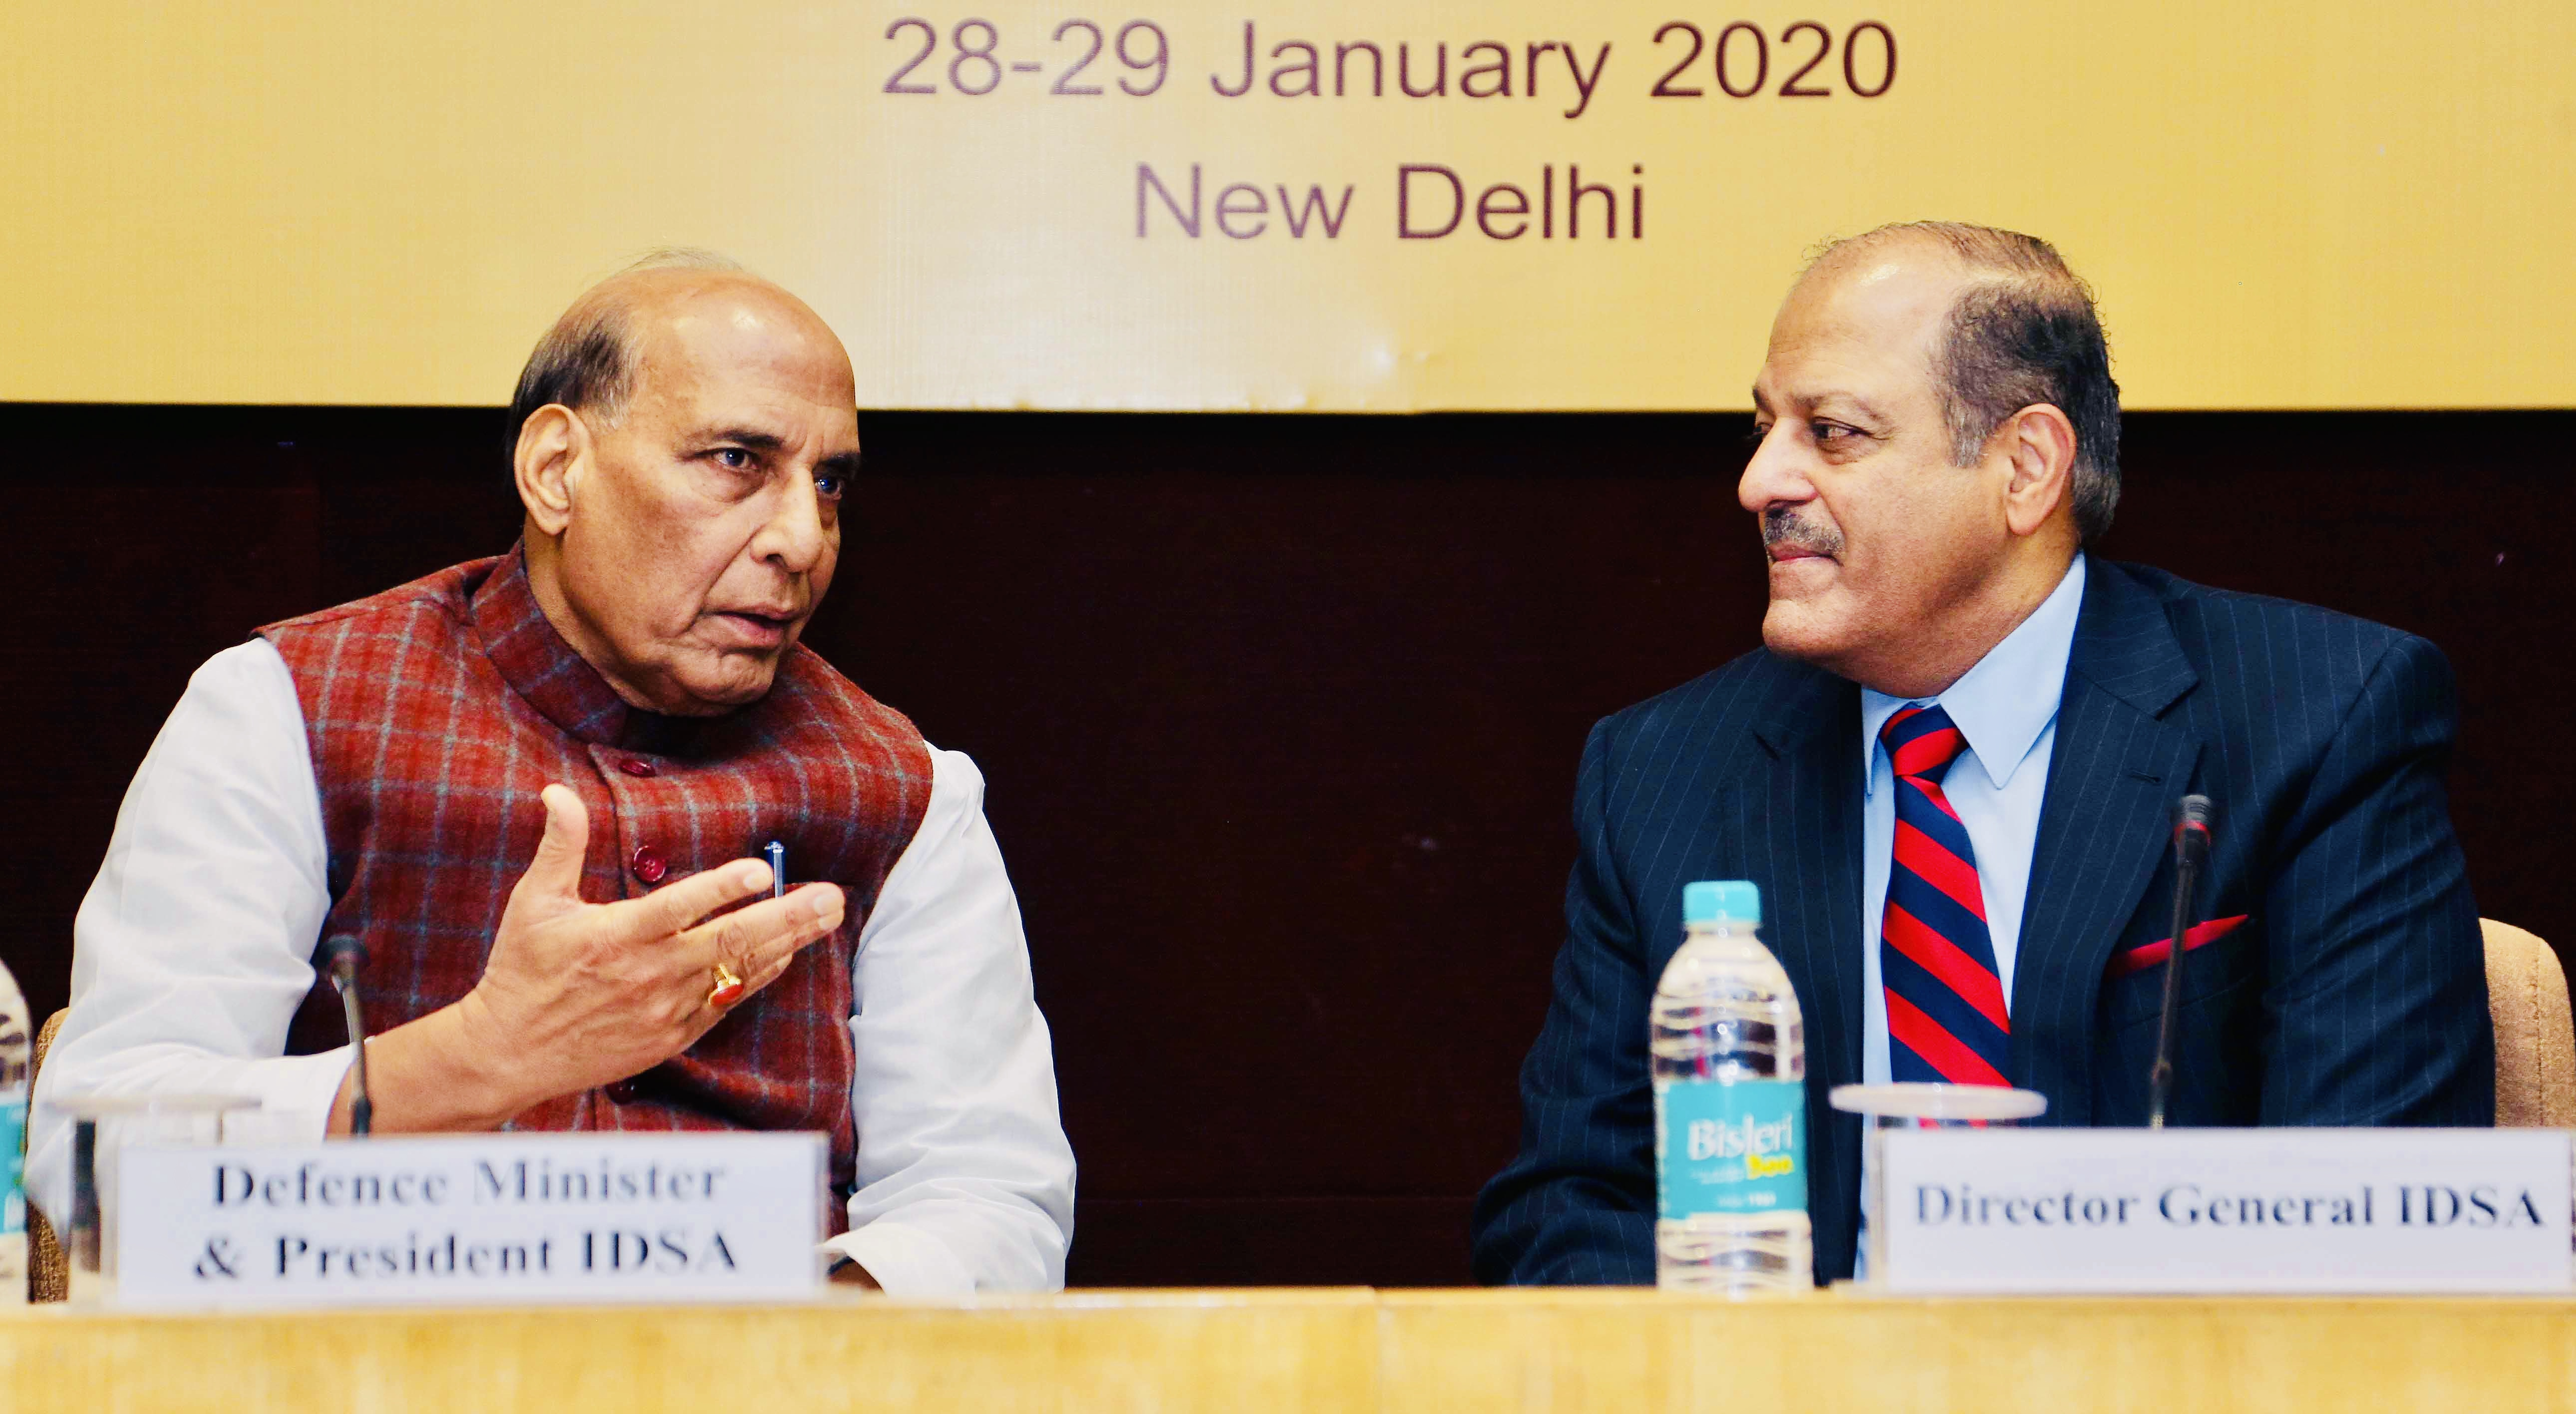 Defence Minister  reaffirms India's firm resolve to tackle cross-border terrorism